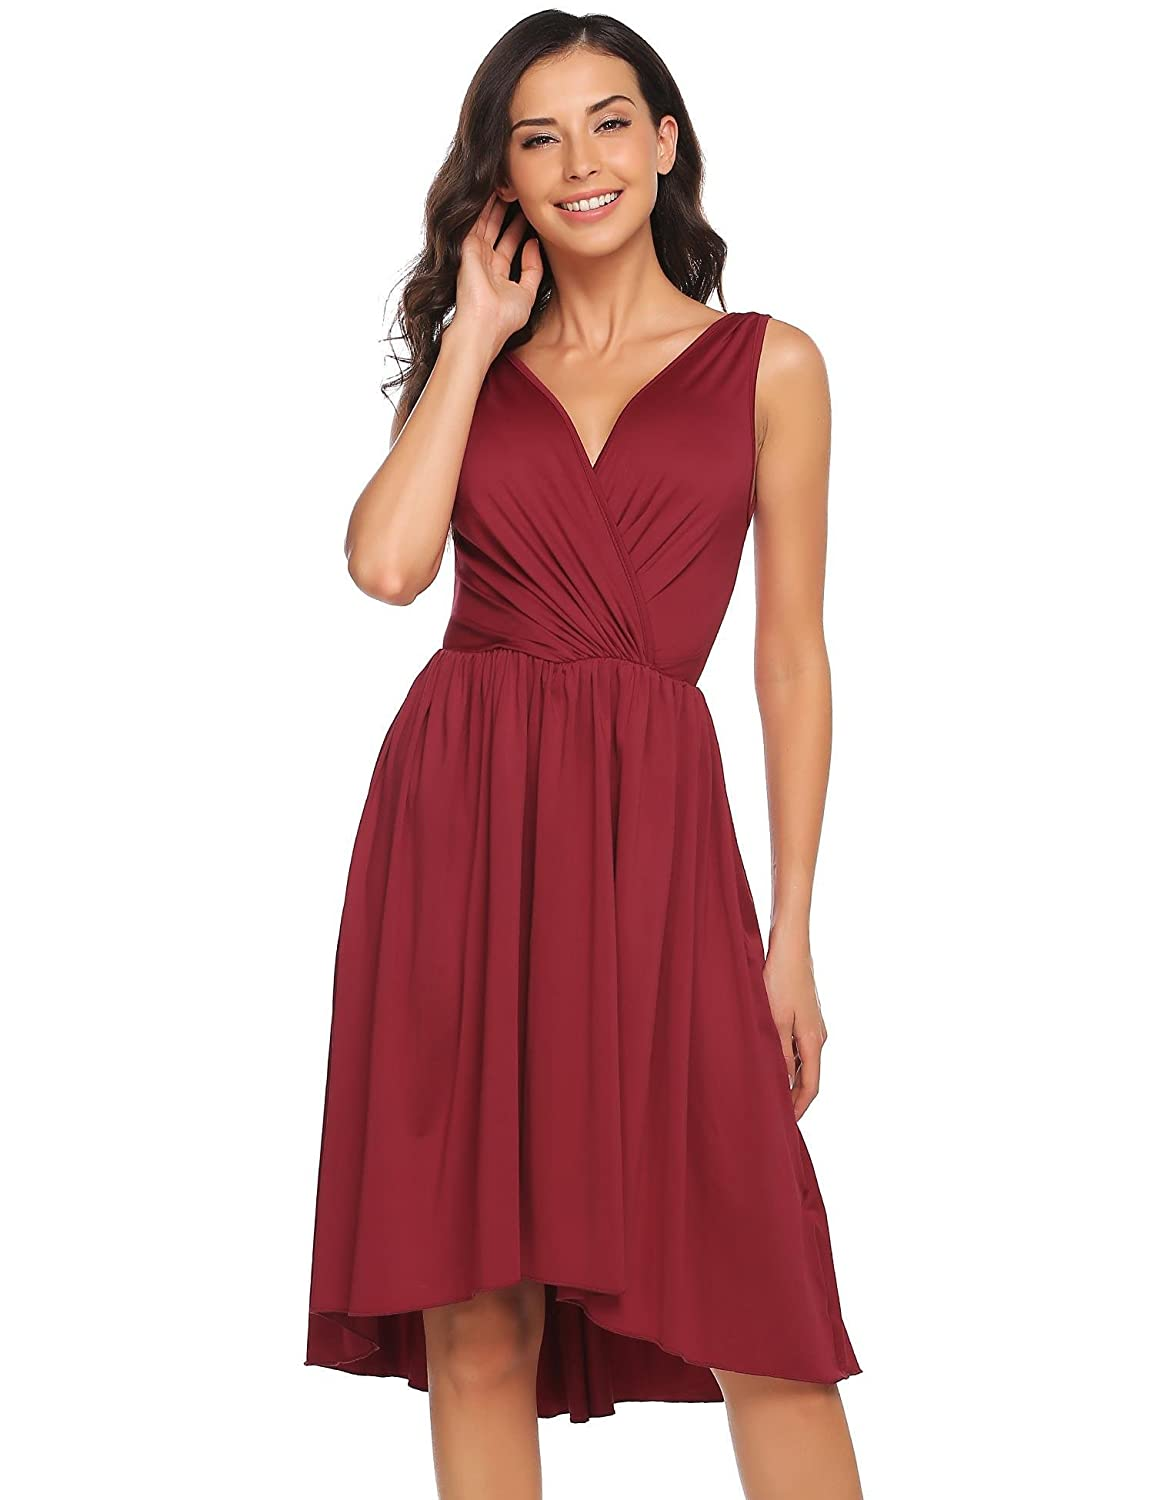 92c49ee3e27d Amazon.com  ANGVNS Women s Summer Sleeveless V Neck Pleated Party Cocktail  High-Low Swing Dress Wine Red XL  Clothing